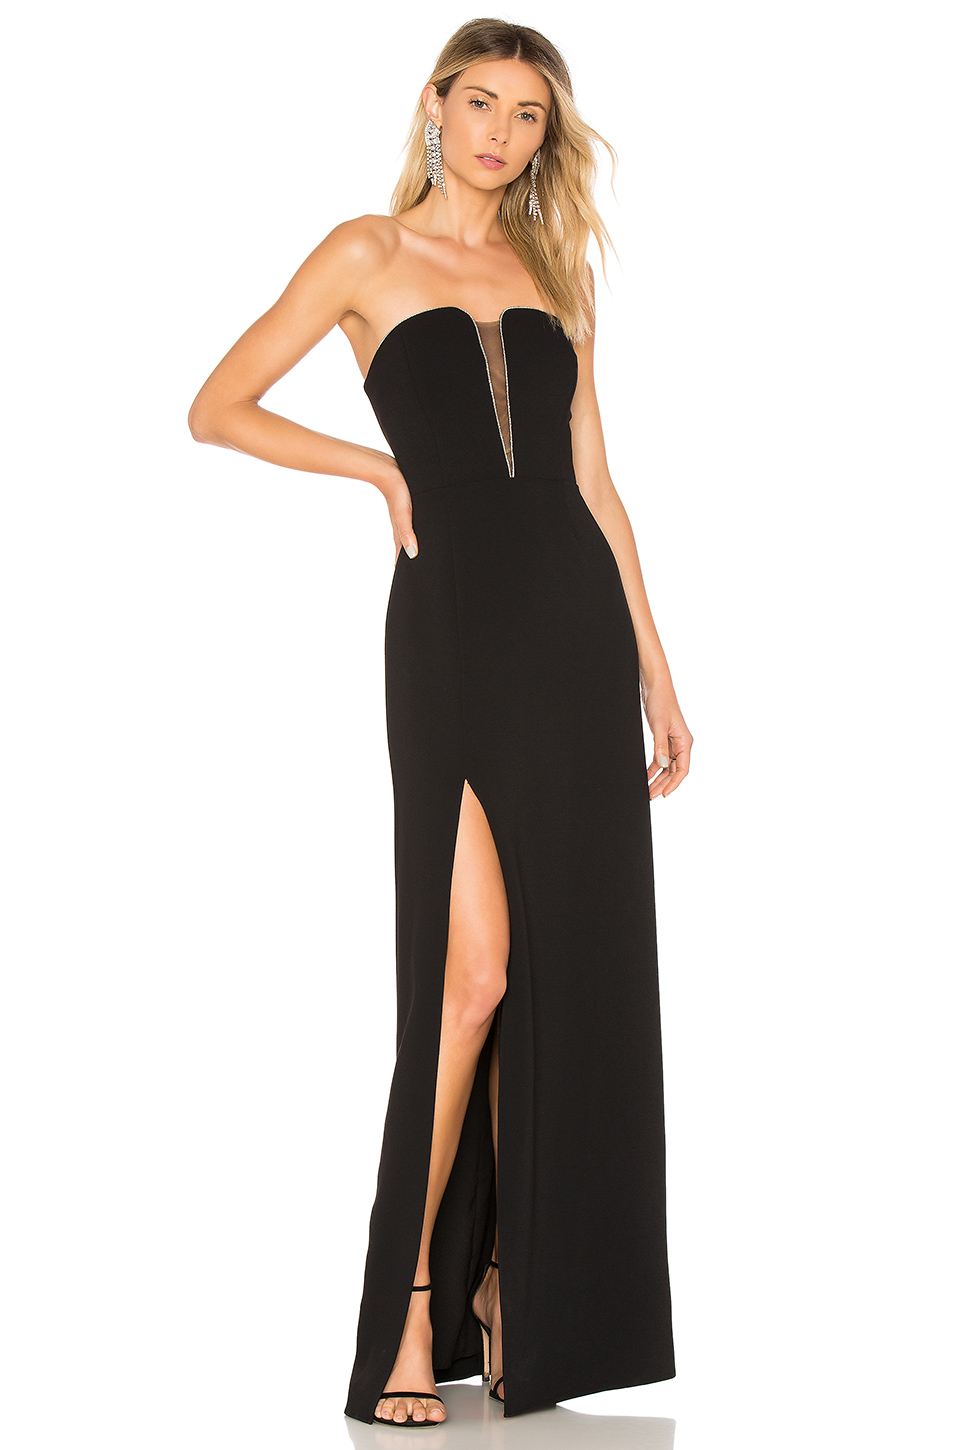 d97d594fdc98 Halston Heritage Strapless Fitted Gown; Halston Heritage Strapless Fitted  Gown ...